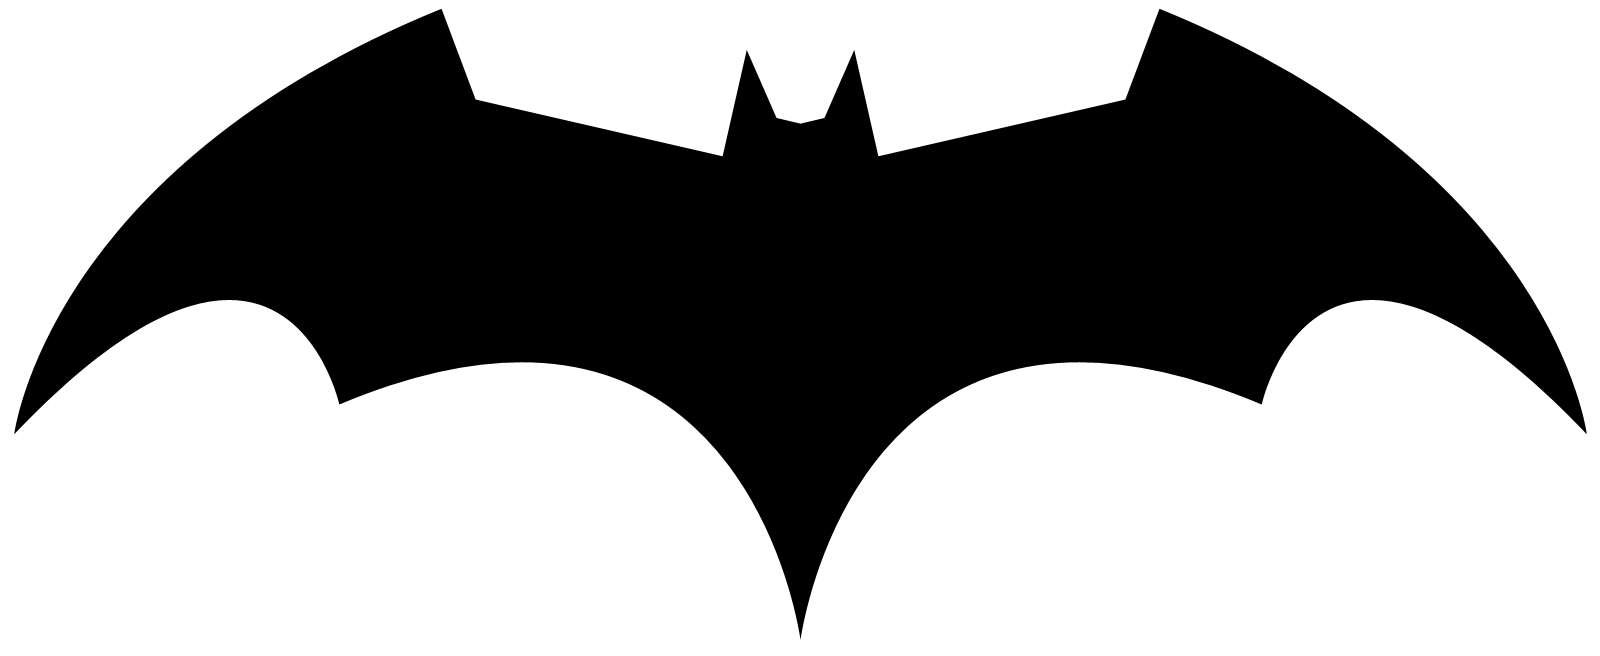 batman logopng